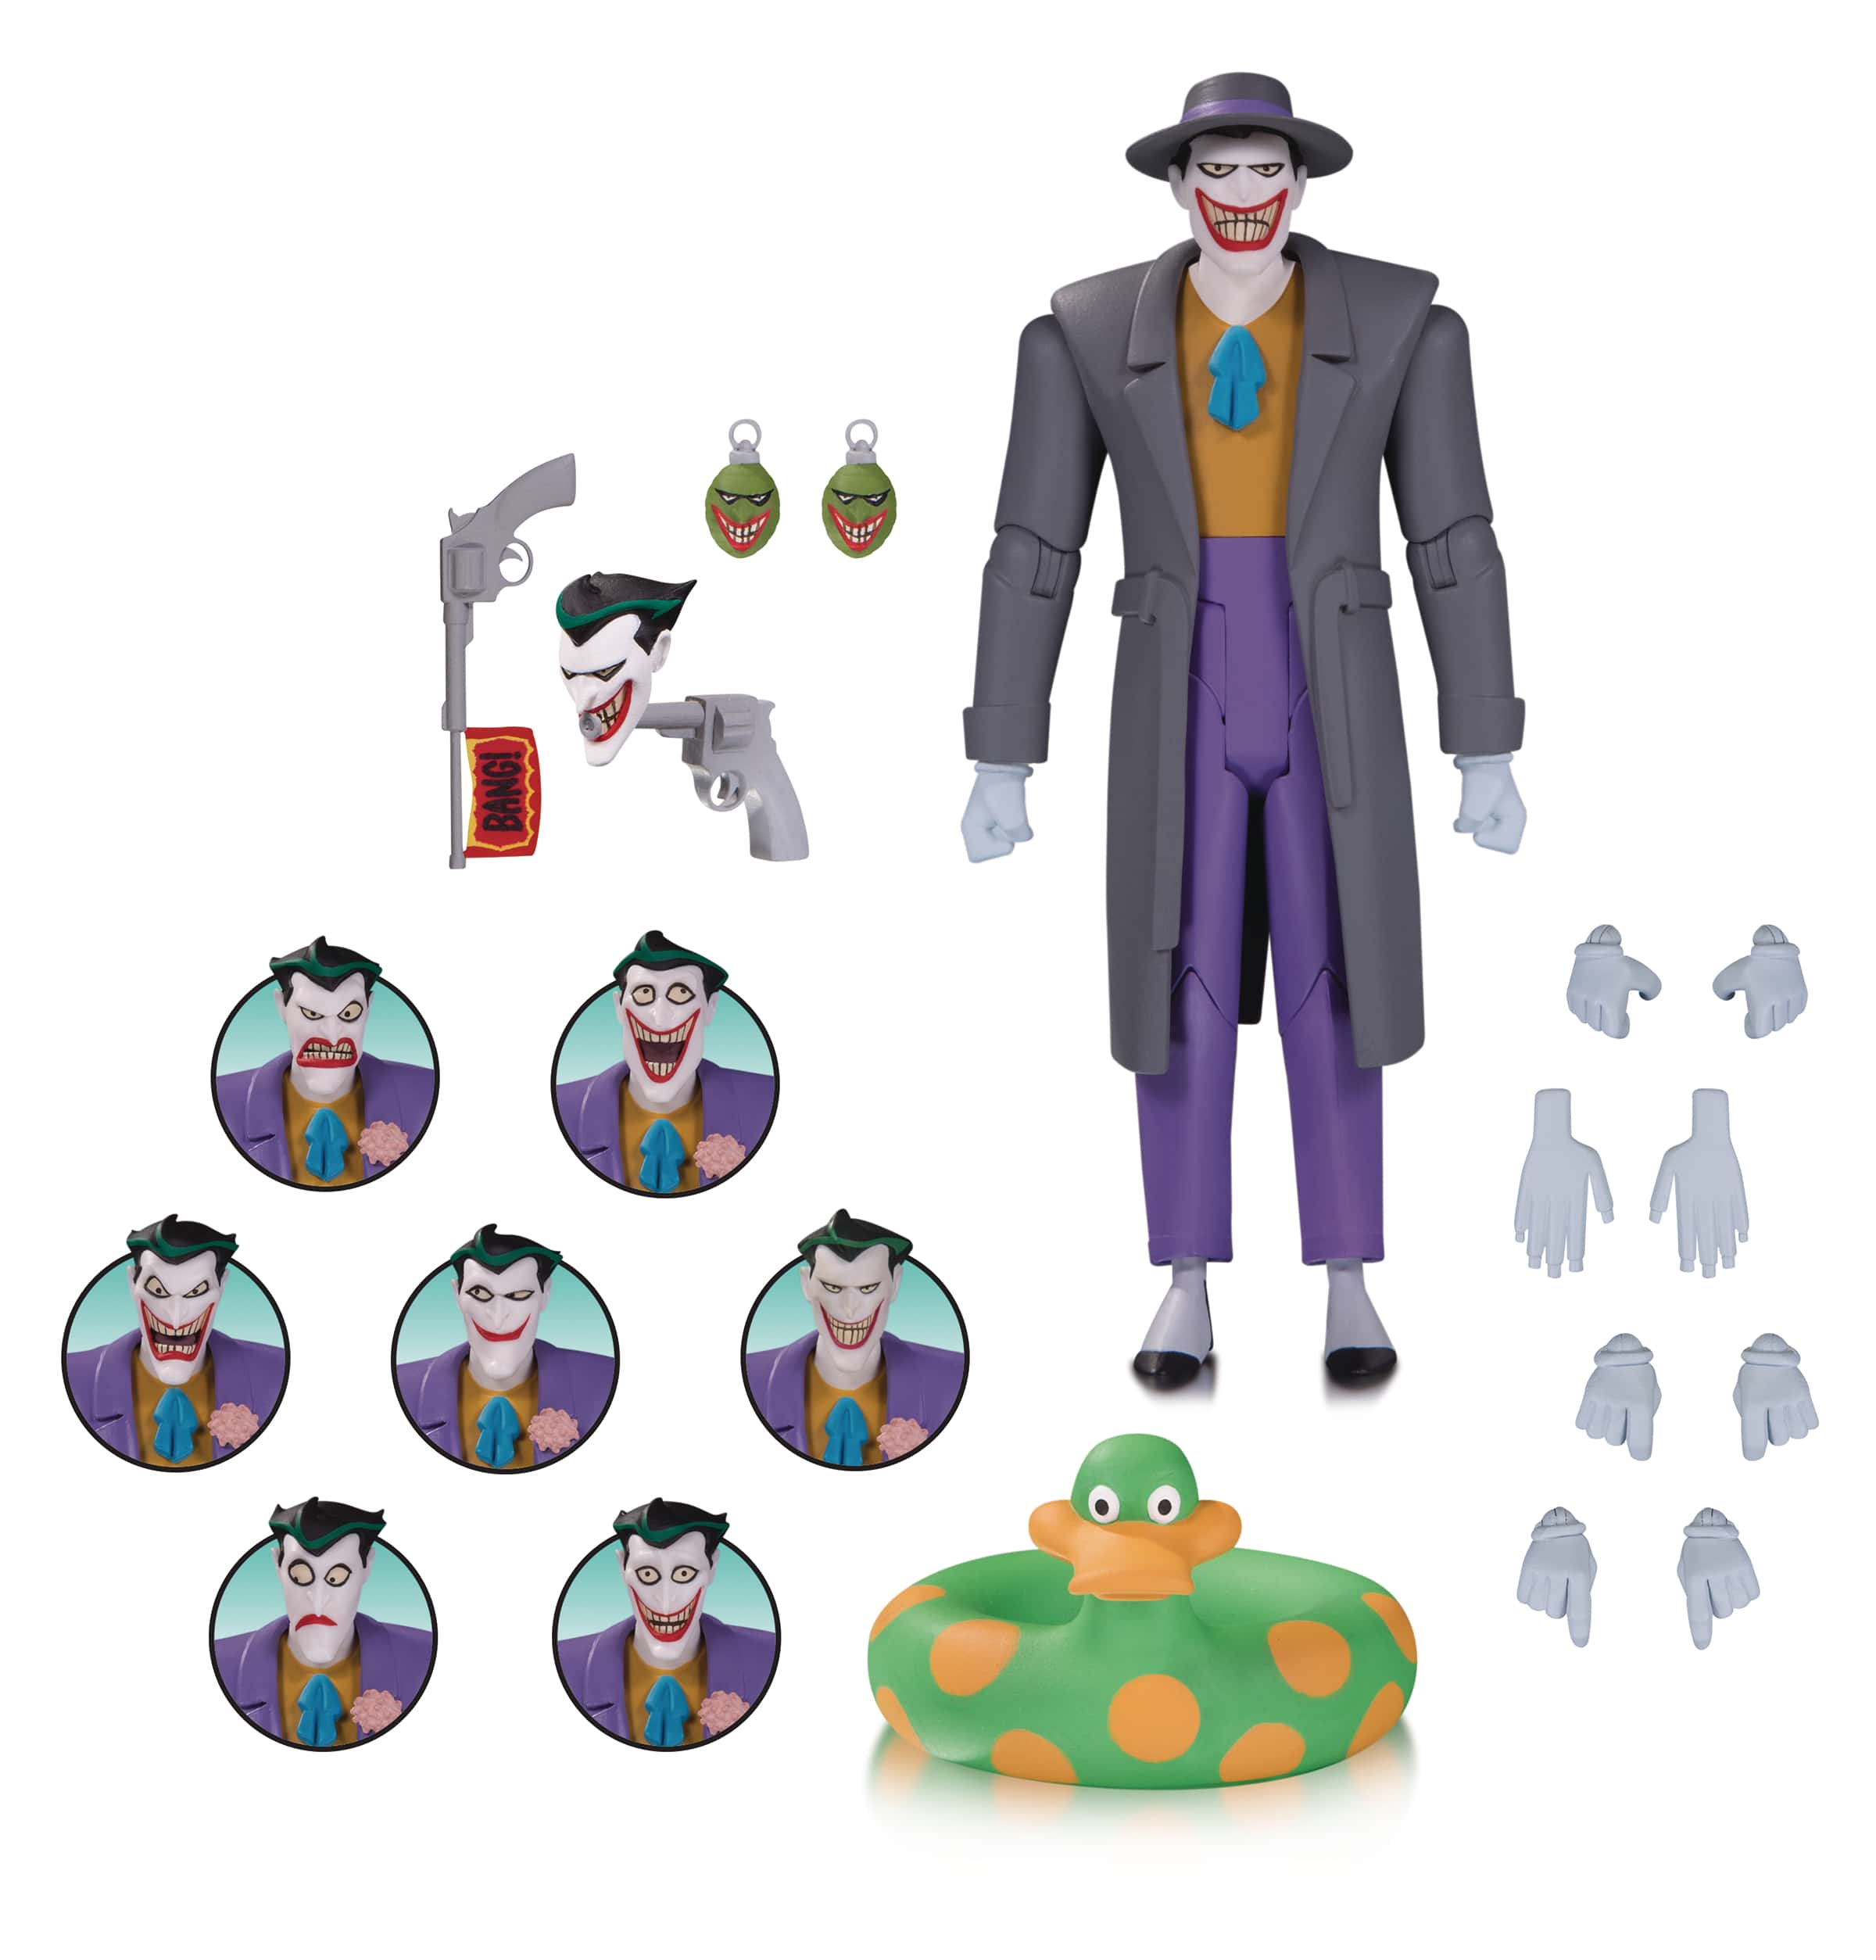 JOKER EXPRESSIONS PACK FIGURA 15,74 CM THE ANIMATED SERIES UNIVERSO DC